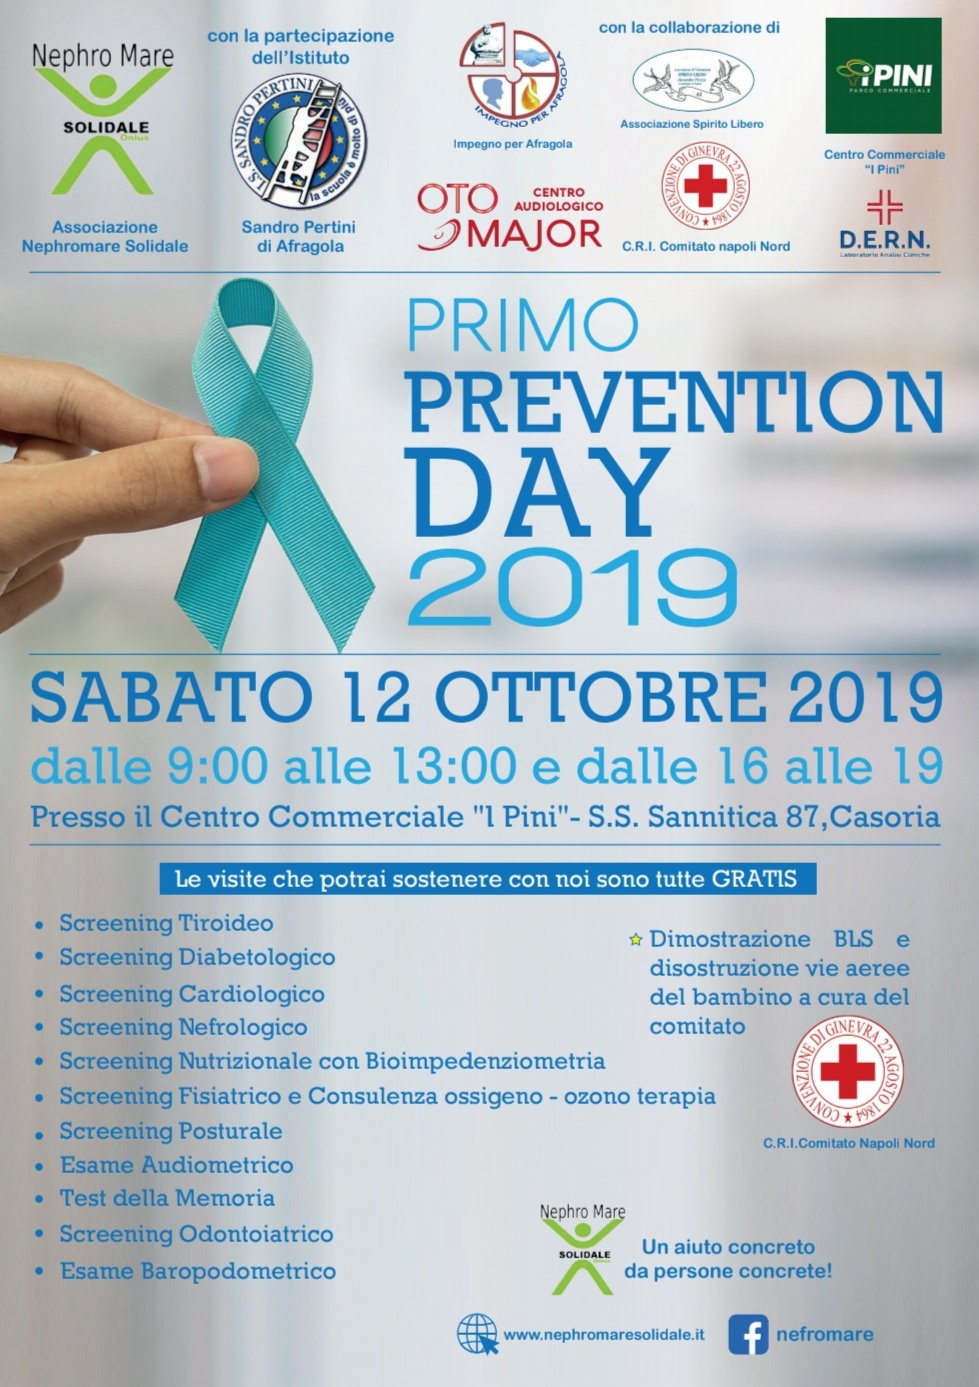 Primo Prevention Day 2019